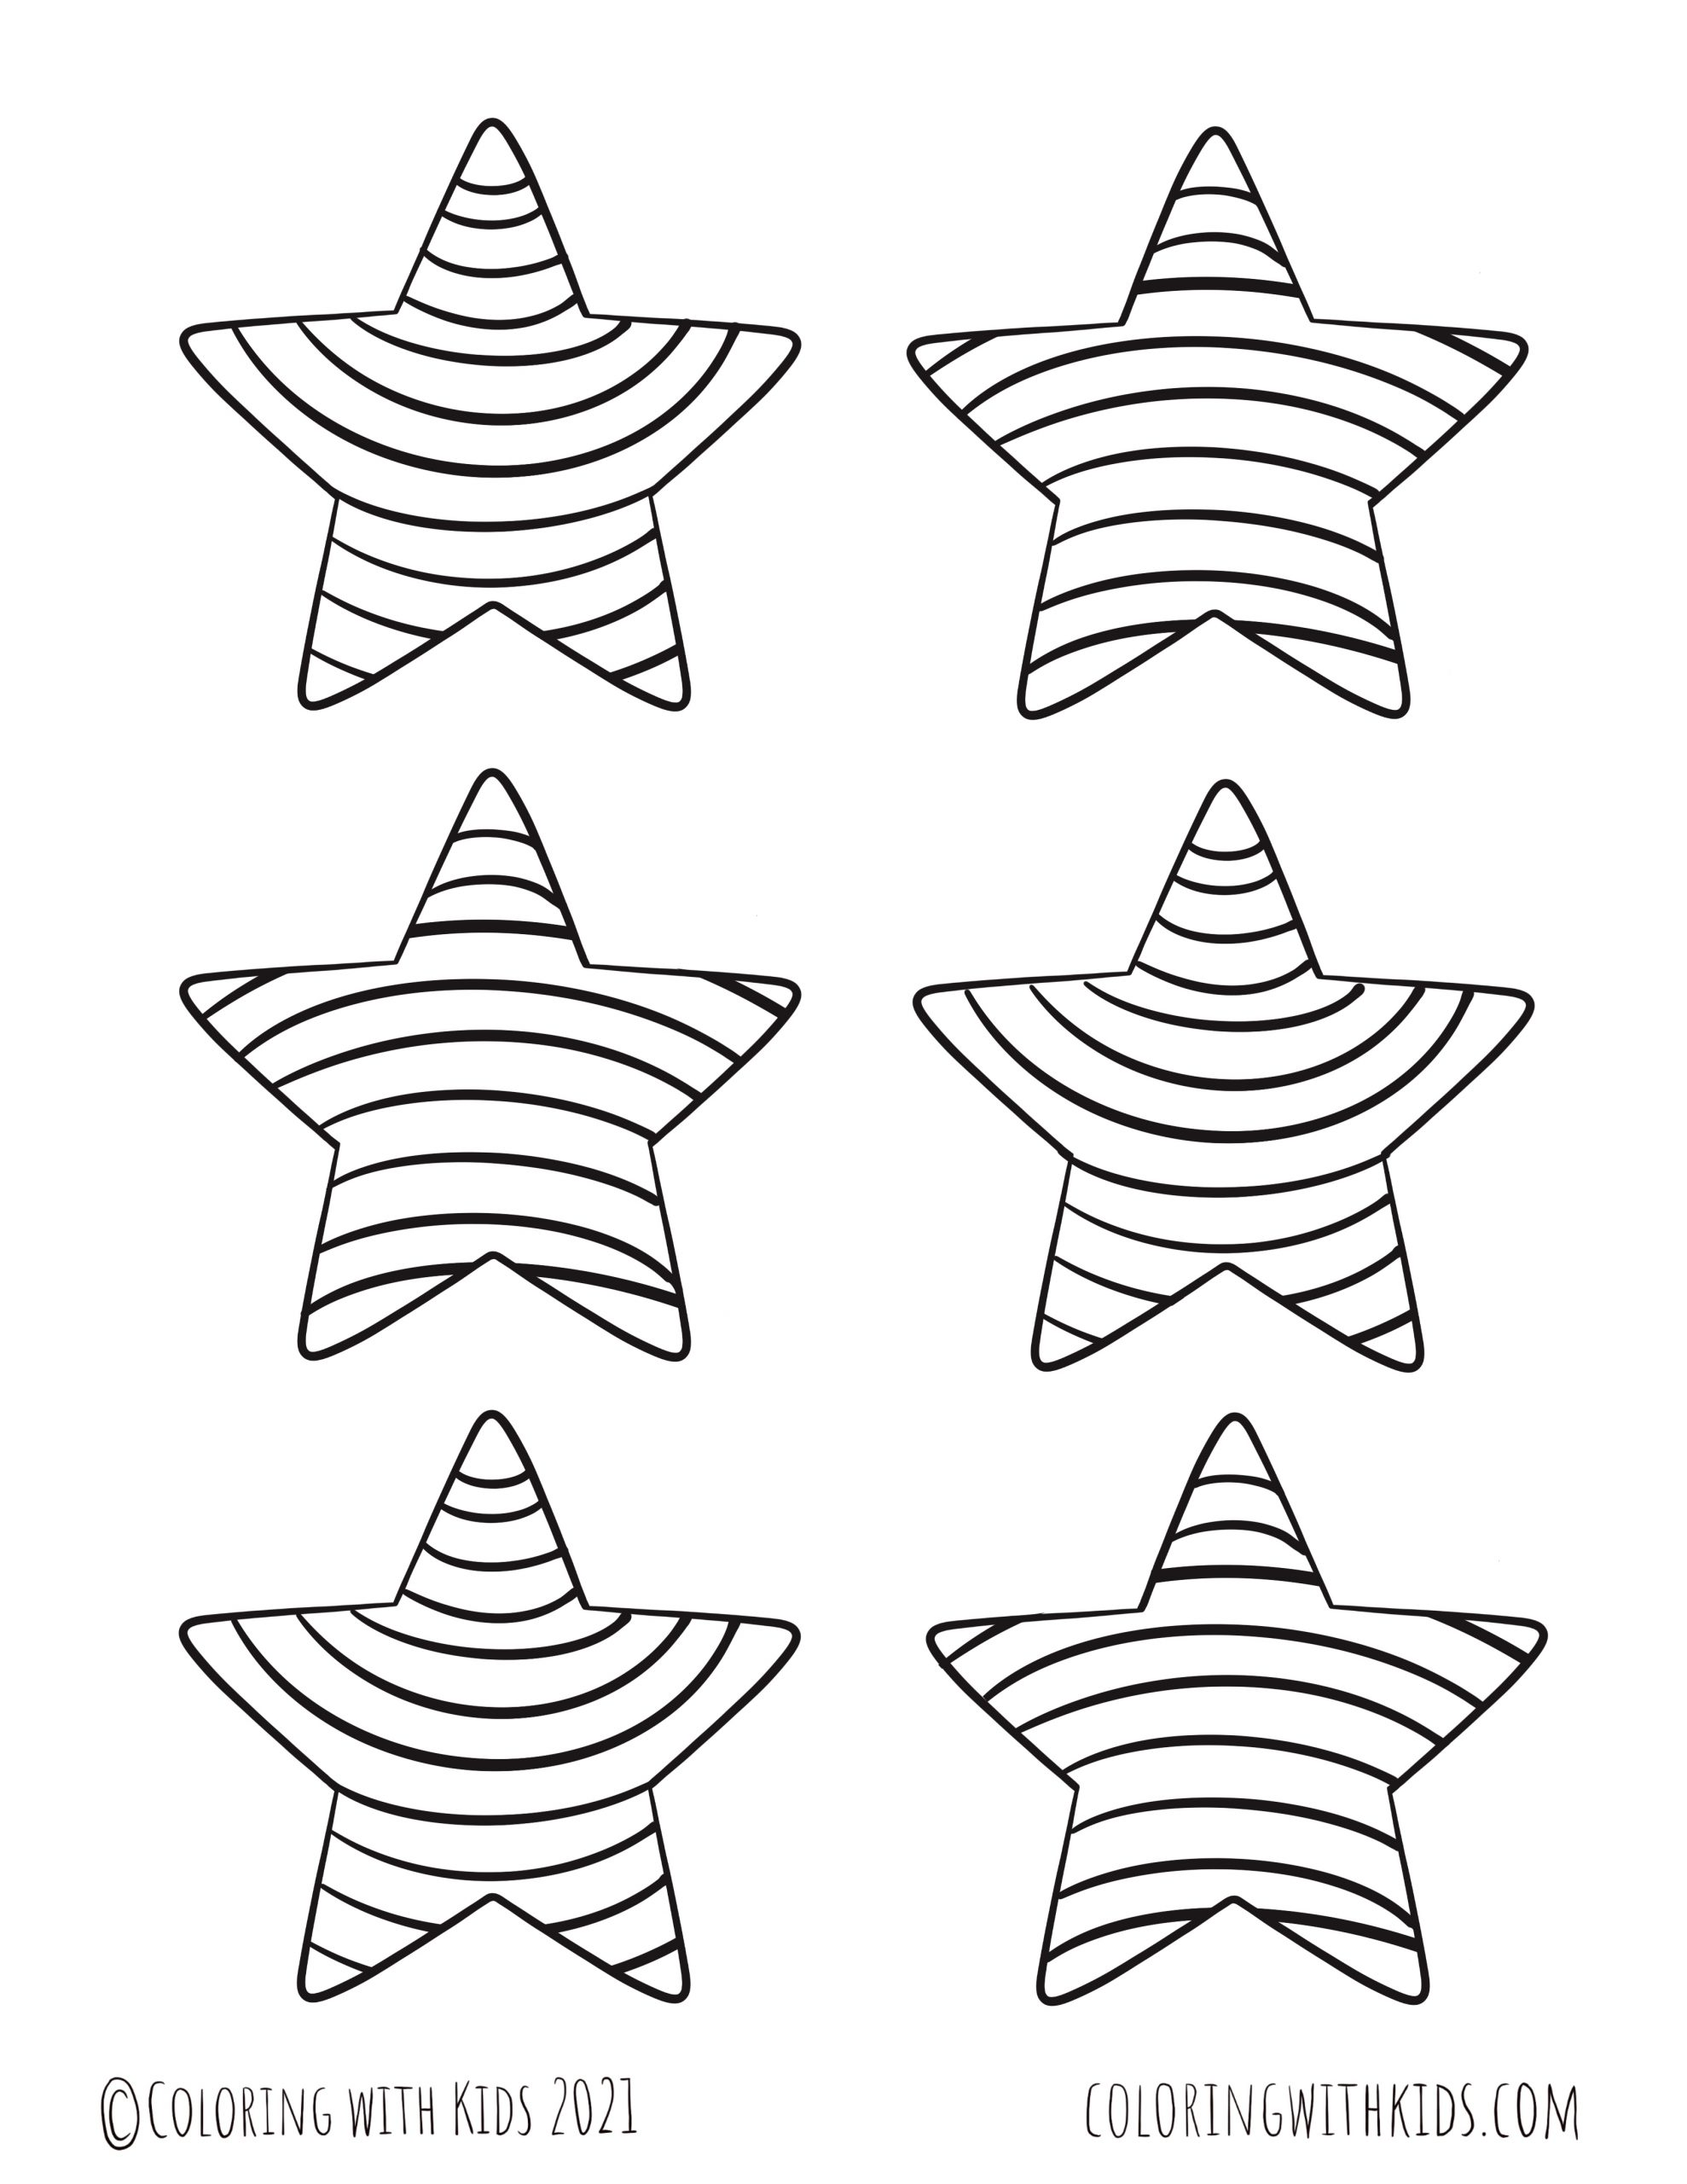 3 Inch Stars Coloring Page